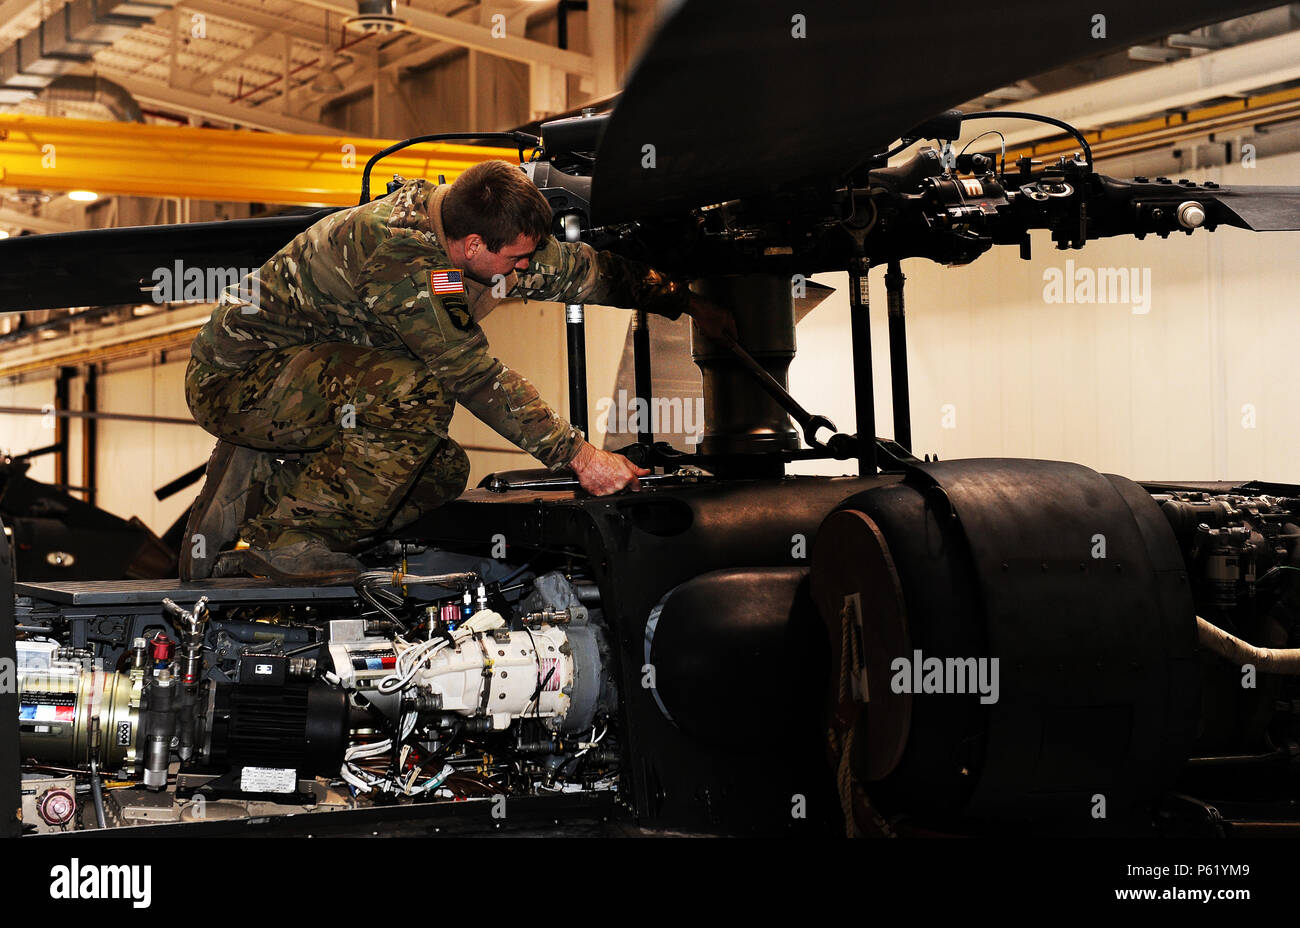 Missouri Army National Guard Staff Sgt. Keith Neiman, a crew chief assigned to the 1-135th Attack Reconnaissance Battalion Army Aviation Support Facility #1, performs routine maintenance on a UH-60 Black Hawk utility helicopter at Whiteman Air Force Base, Mo., April 1, 2016. More than 90 enlisted aircraft maintainers, who previously only worked on the AH-64 Apache, are in the process of certifying to perform maintenance on Black Hawks following the helicopter's recent arrival. - Stock Image